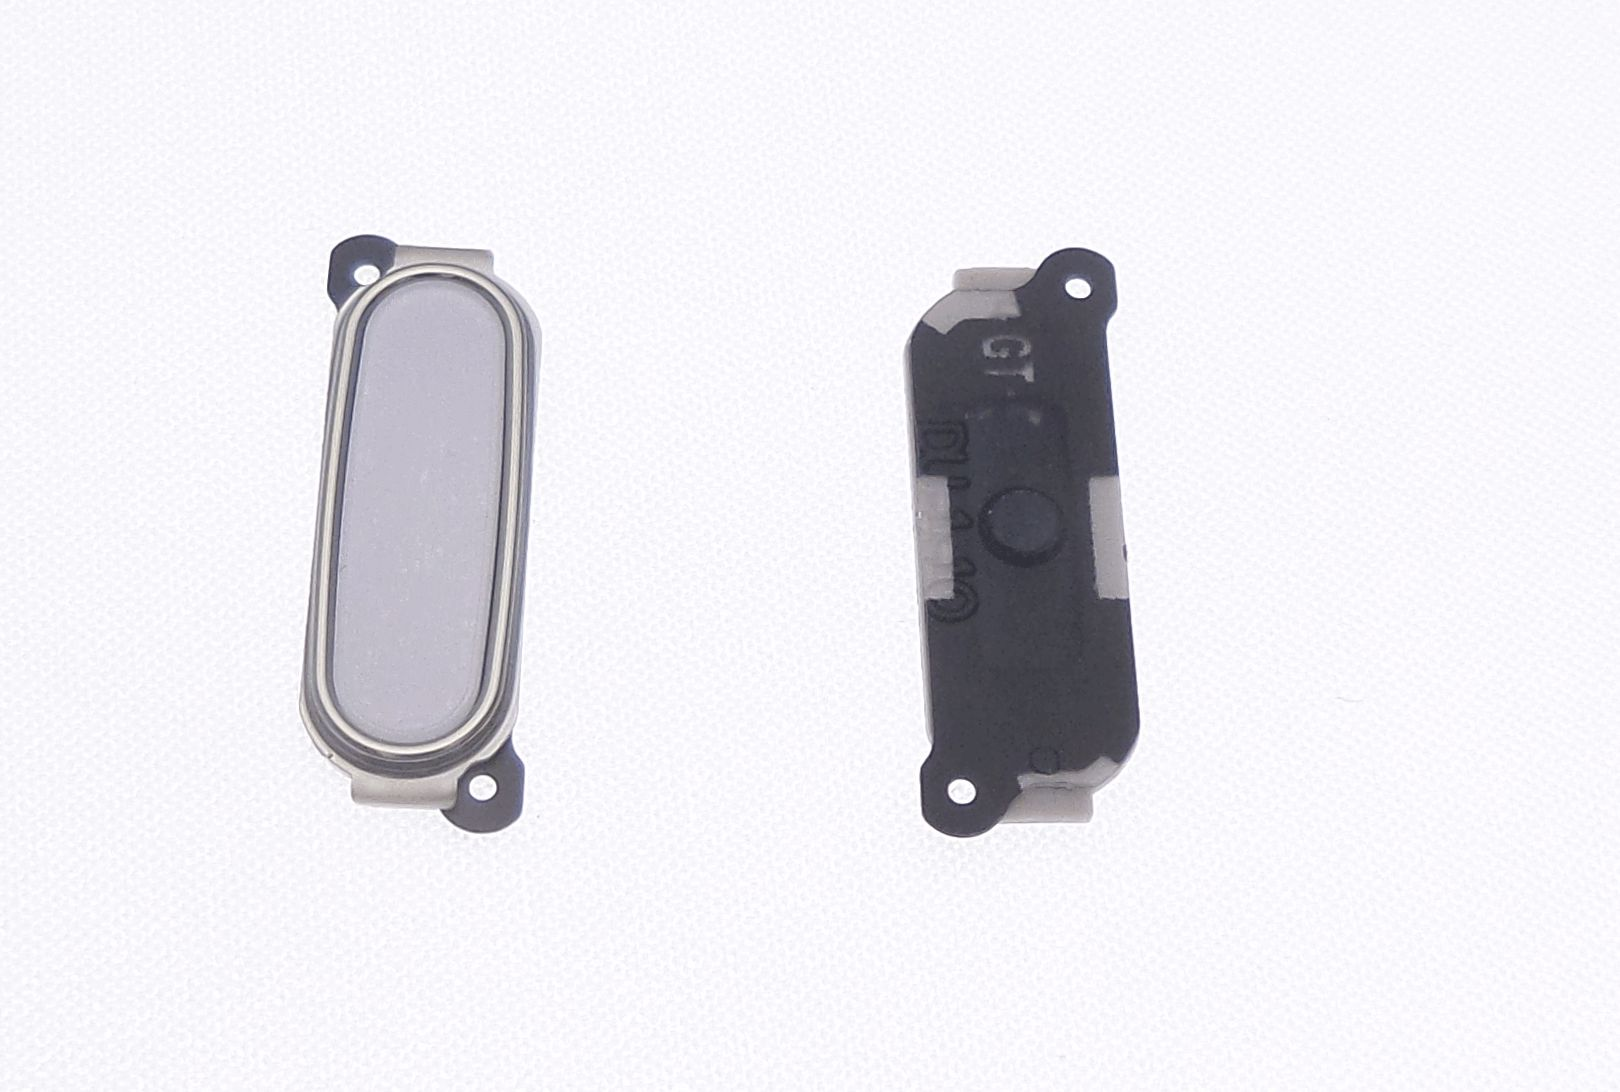 Bouton home blanc pour Samsung Galaxy Trend S7560 S7562